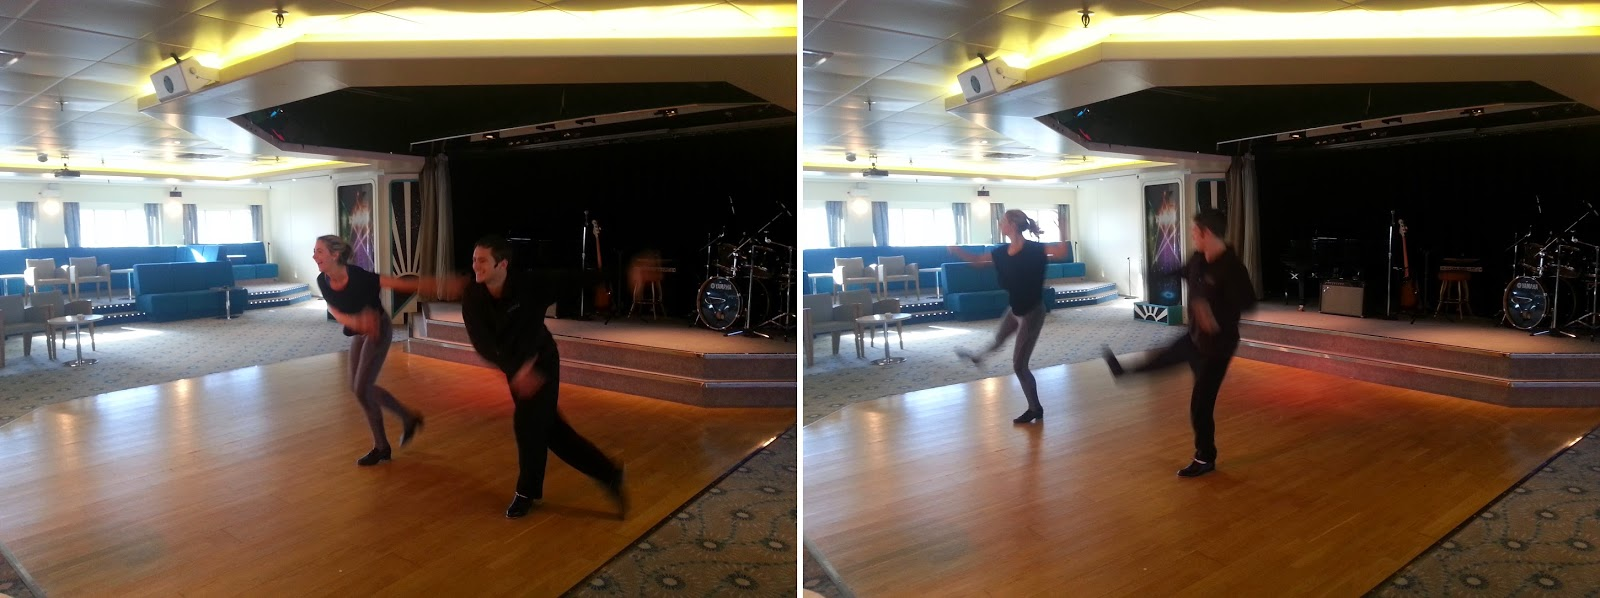 On Board Voyages of Discovery's Cruise Ship MV Voyager - Dancers